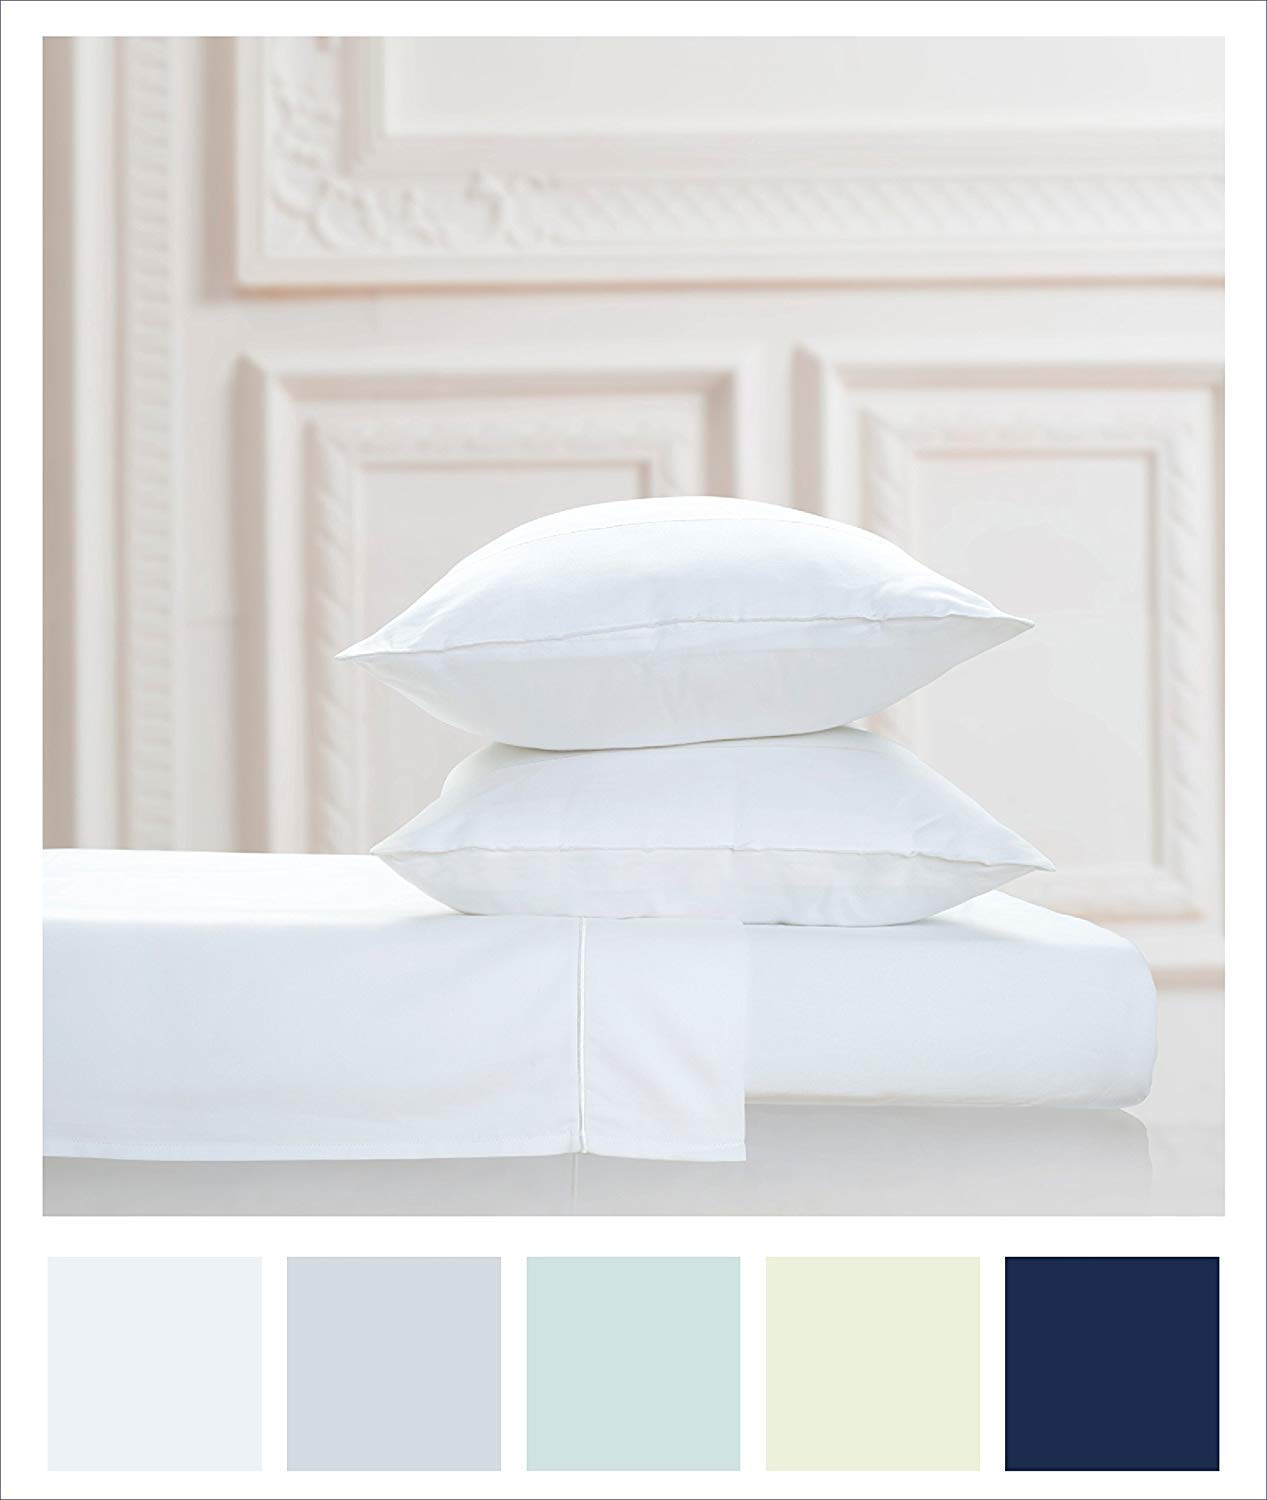 VGI Linen Authentic Heavy Quality Hotel Collection 100% Egyptian Cotton- Super Soft 1500 Thread Count 2-PCs Pillow Cases Solid Style Available in Many Sizes & Color's (Queen, White)